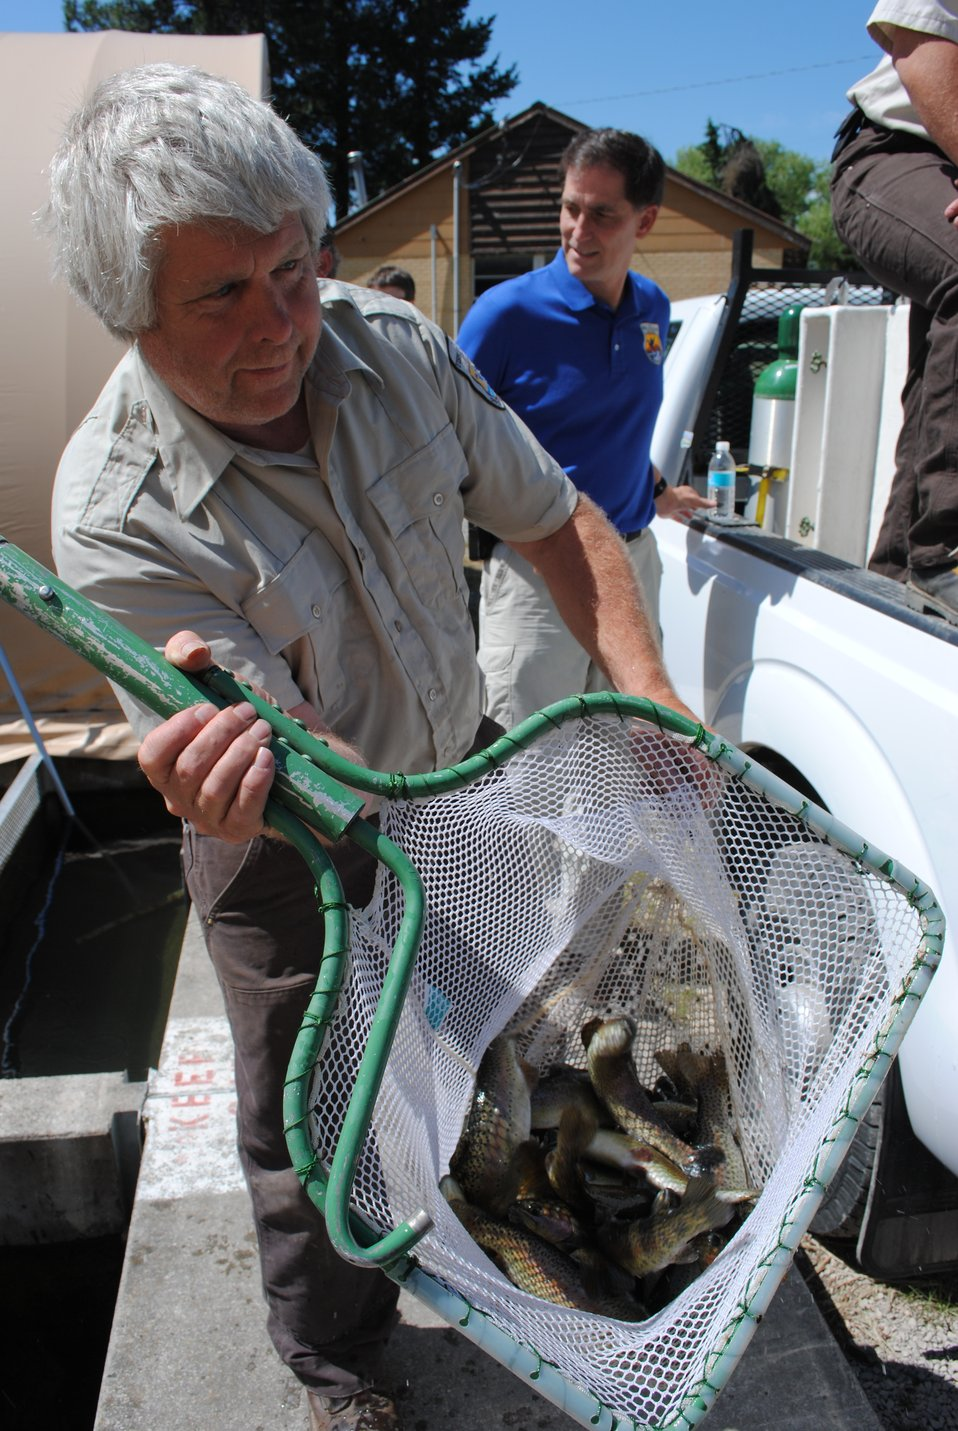 Hatchery Employee, Gar Holmes, Assists With the Fish Transfer